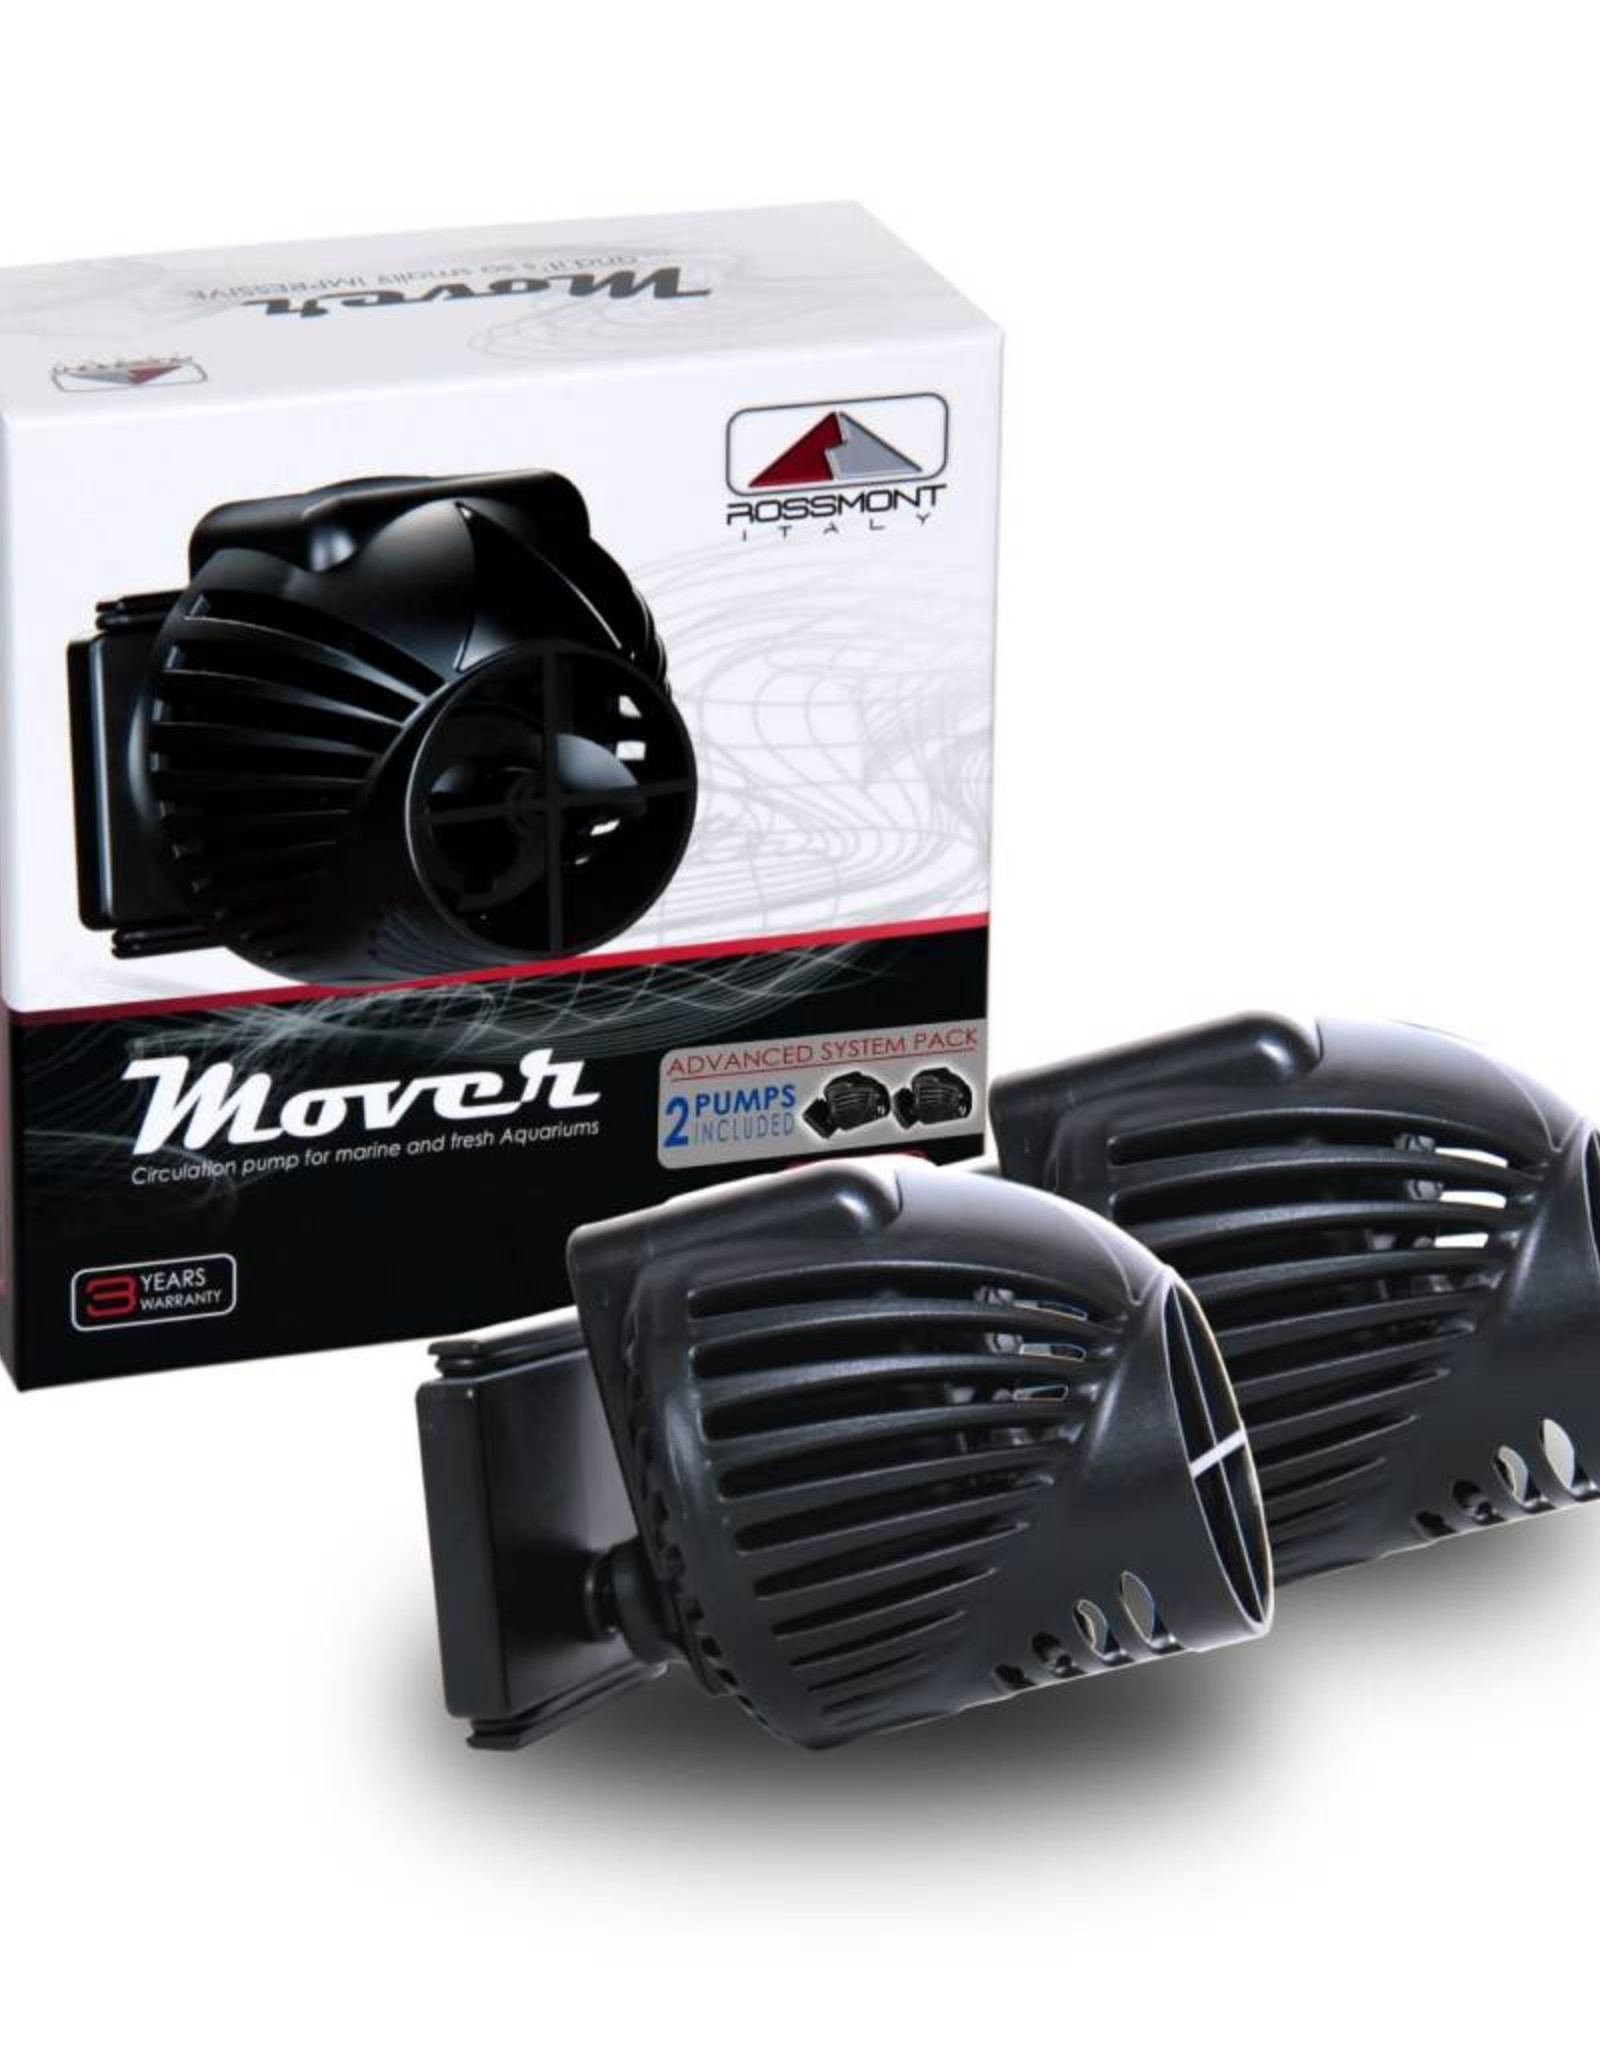 ROSSMONT MOVER PACK M1500 PUMPS